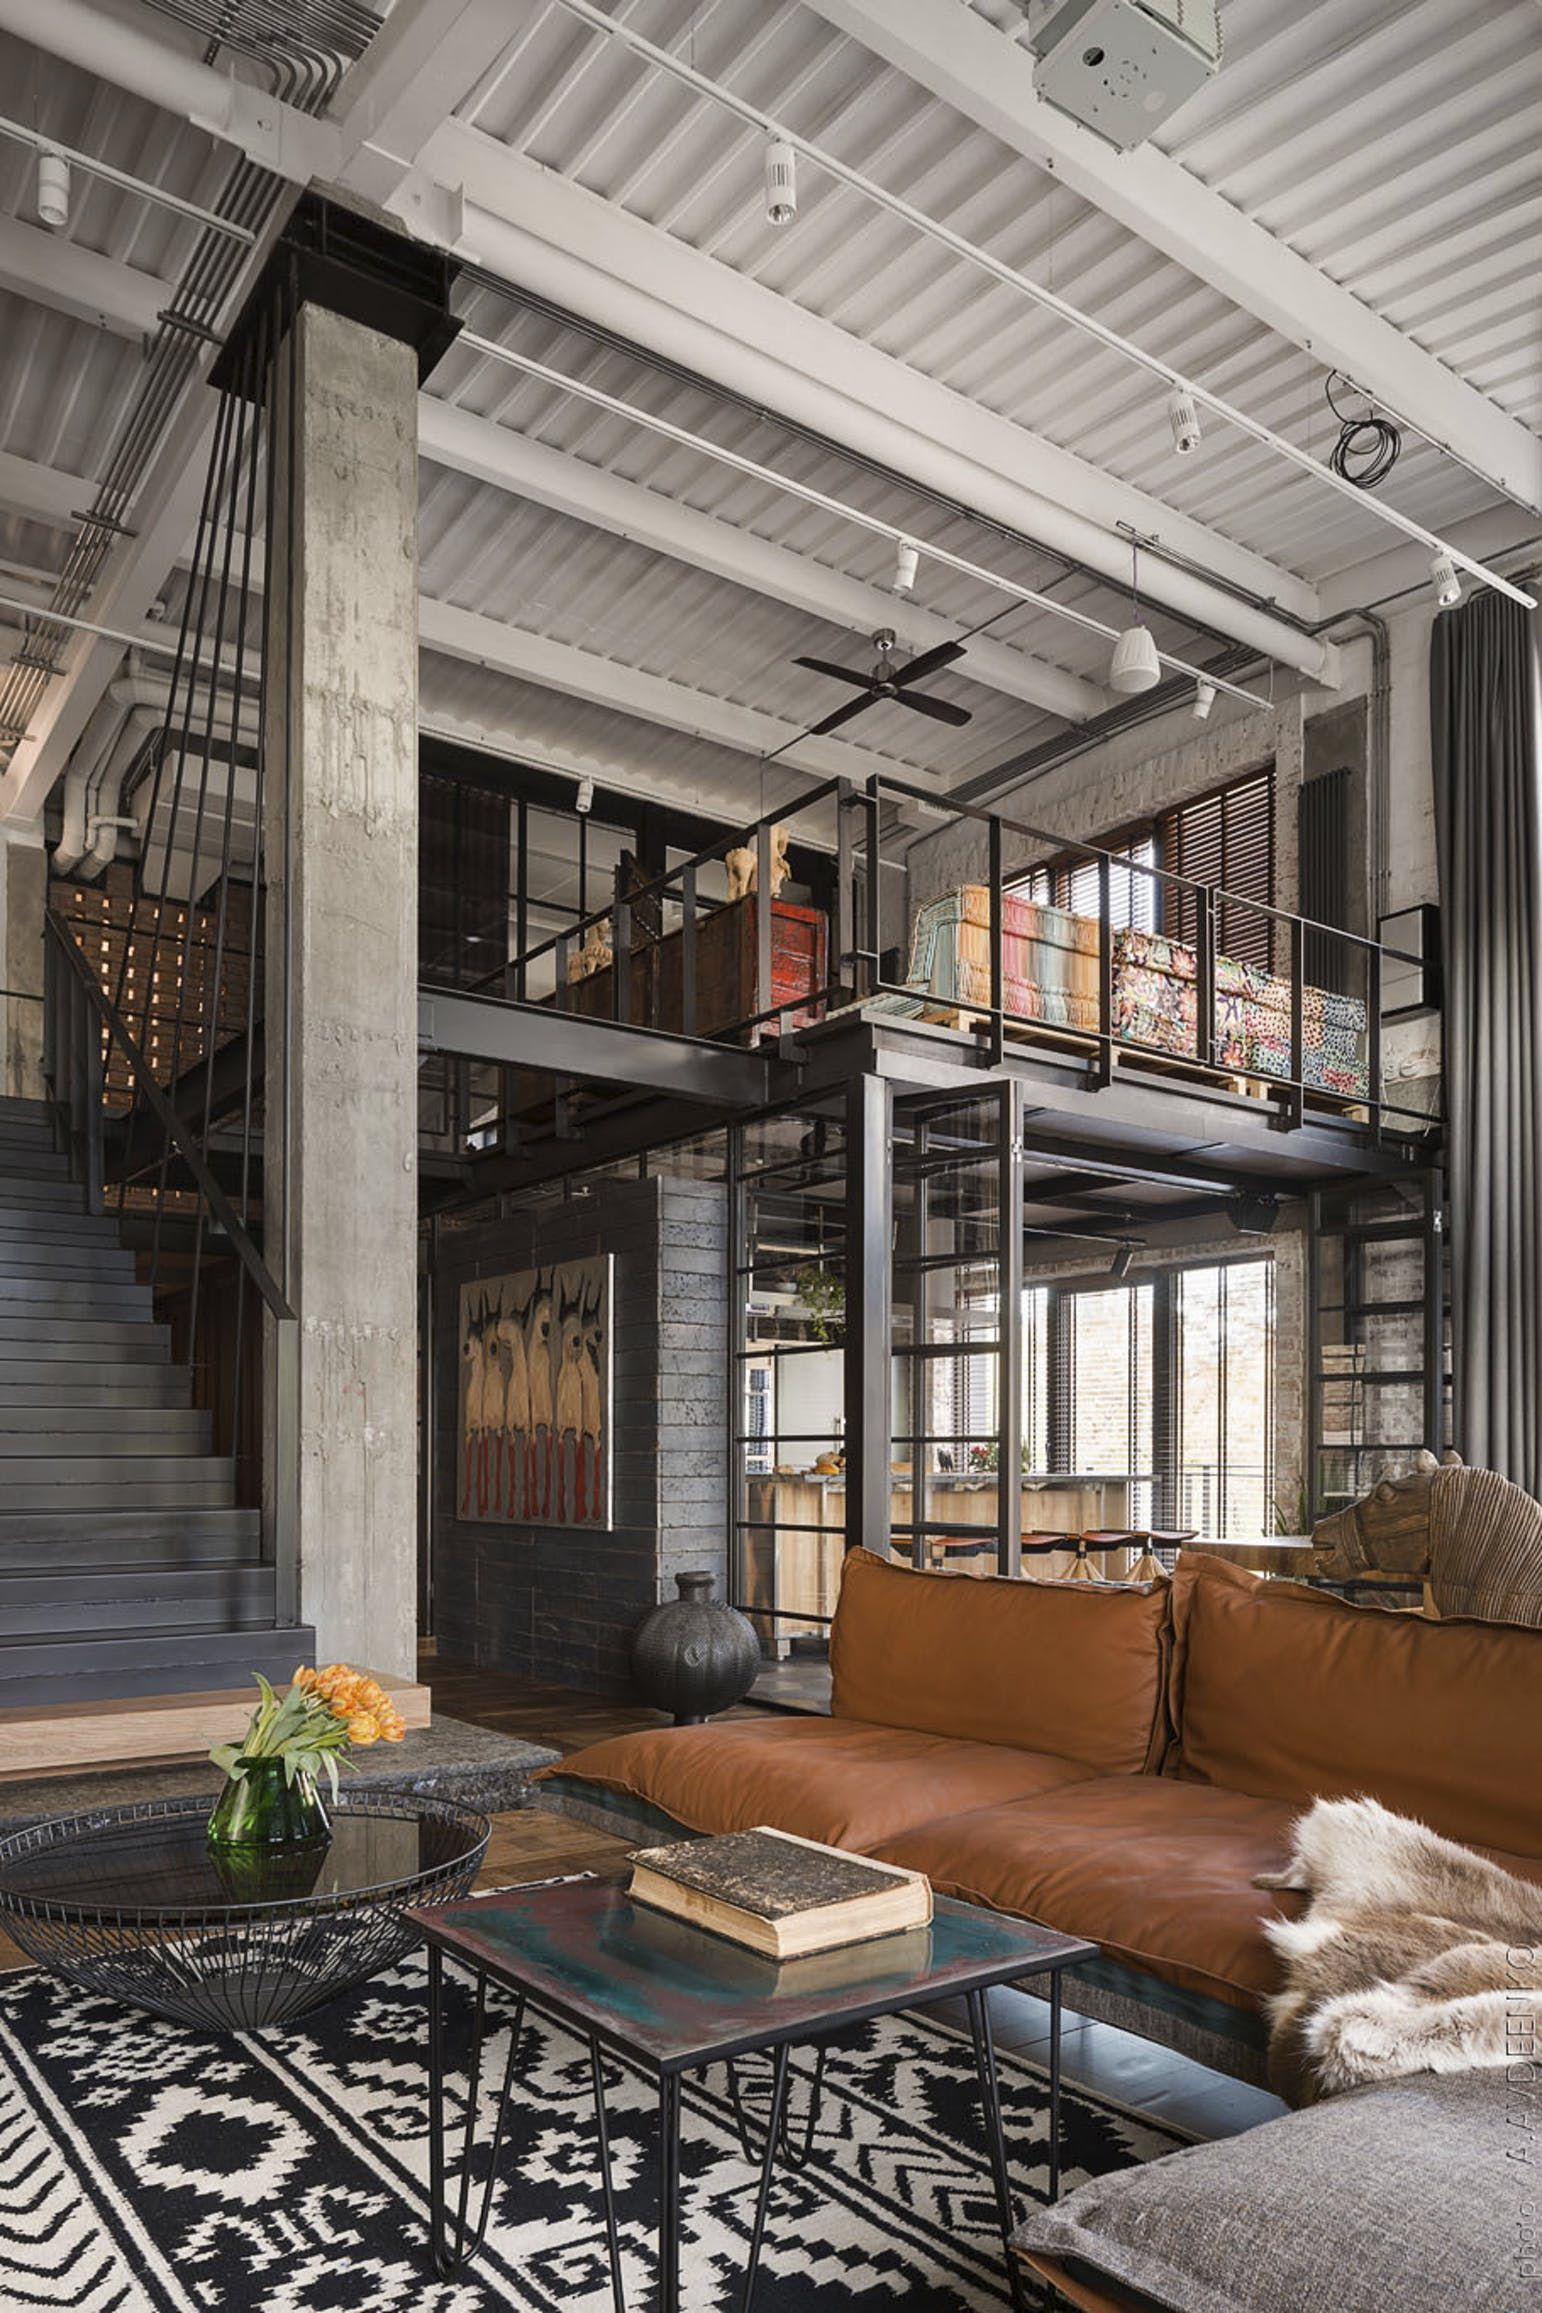 10 New Living Room Designs For Your Friday Inspiration In 2020 Loft Interior Design Industrial Home Design Industrial Loft Design #new #living #room #designs